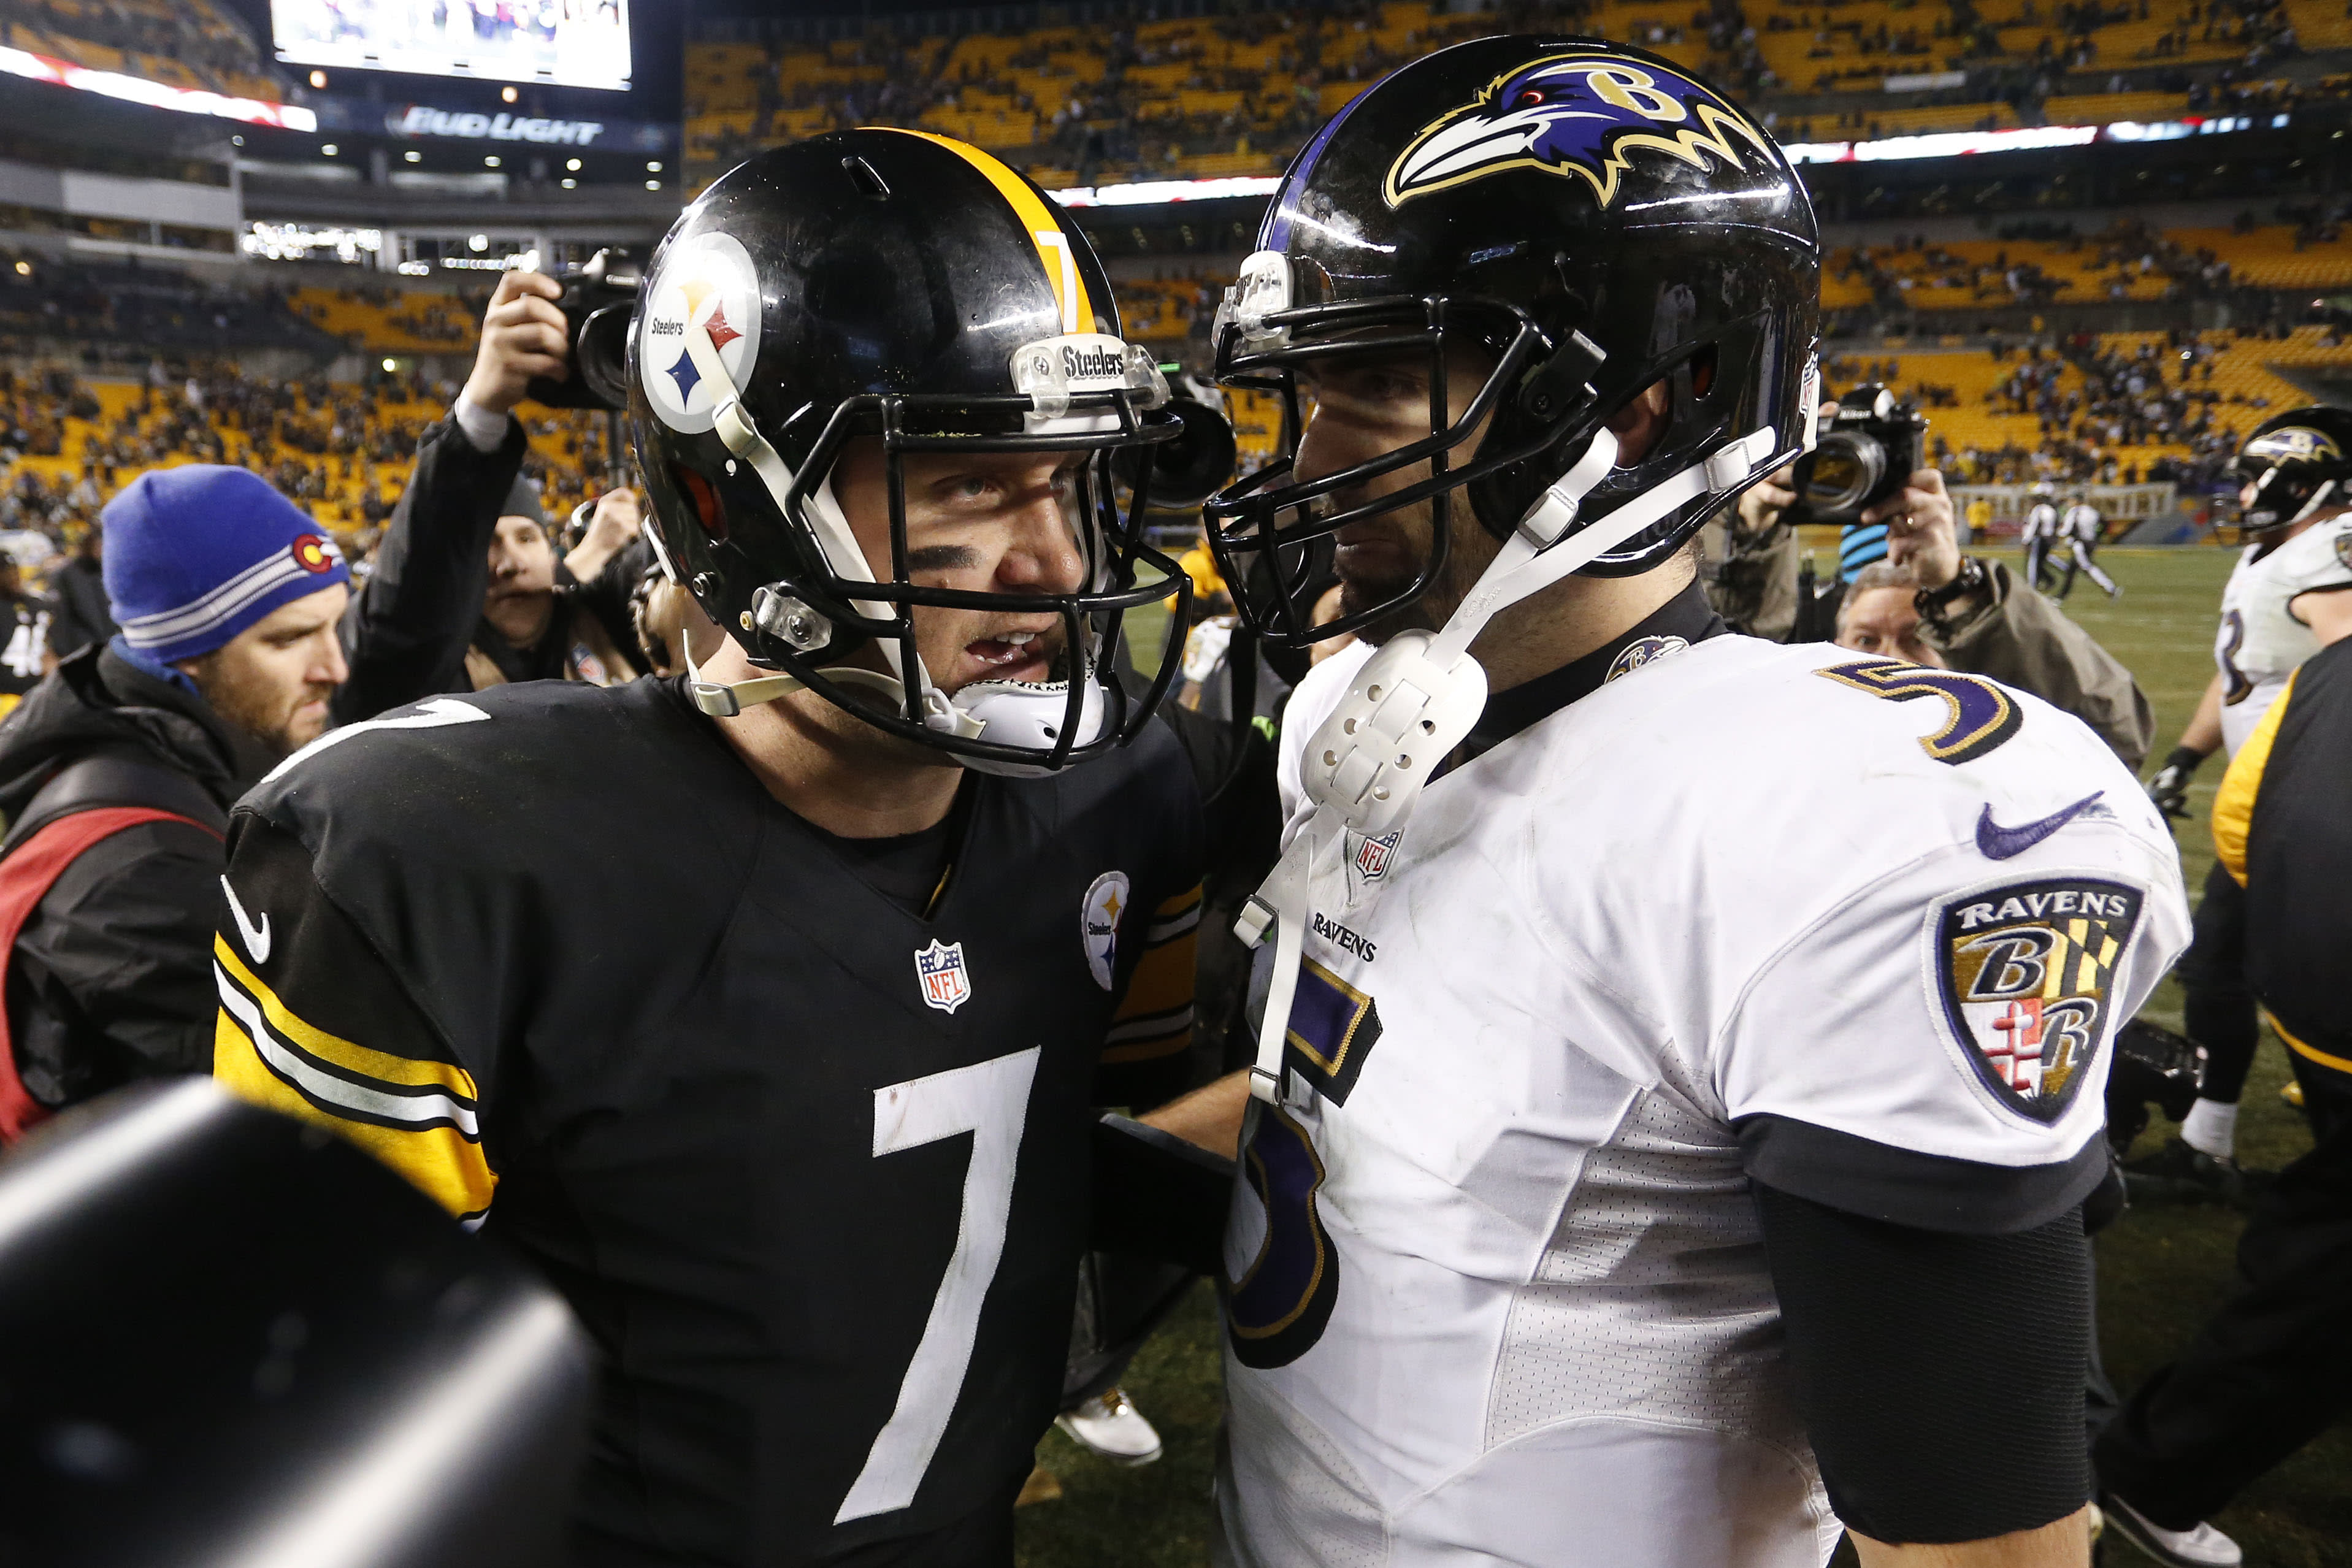 A preseason projection says Ravens are team to beat in AFC North